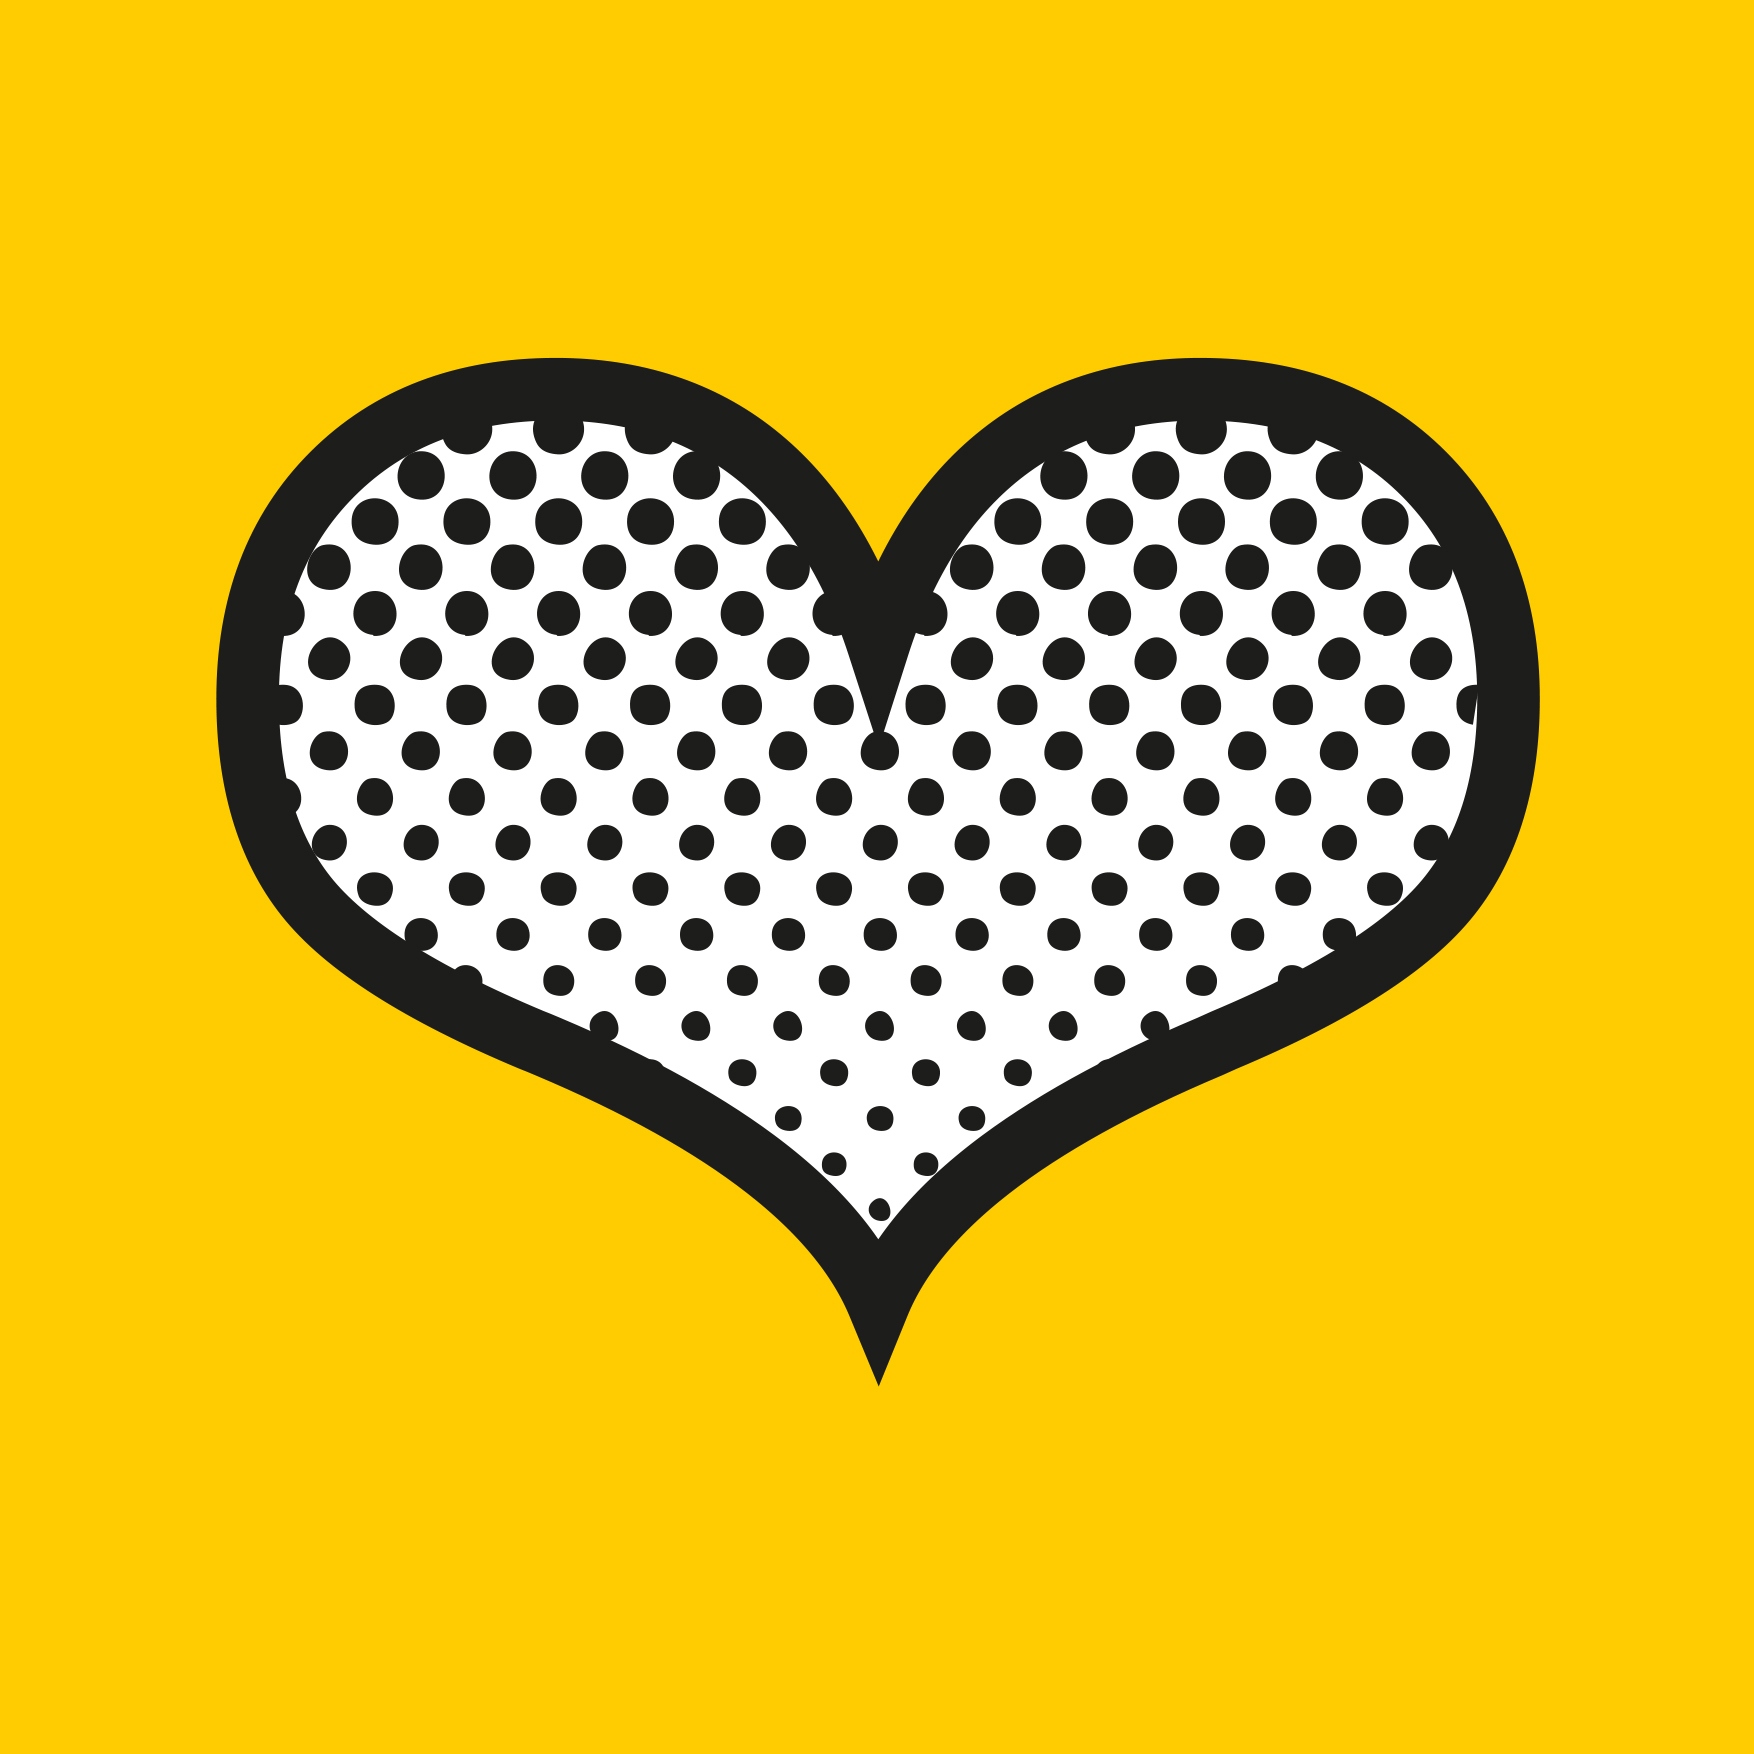 assets_v1-2020-yellow-heart